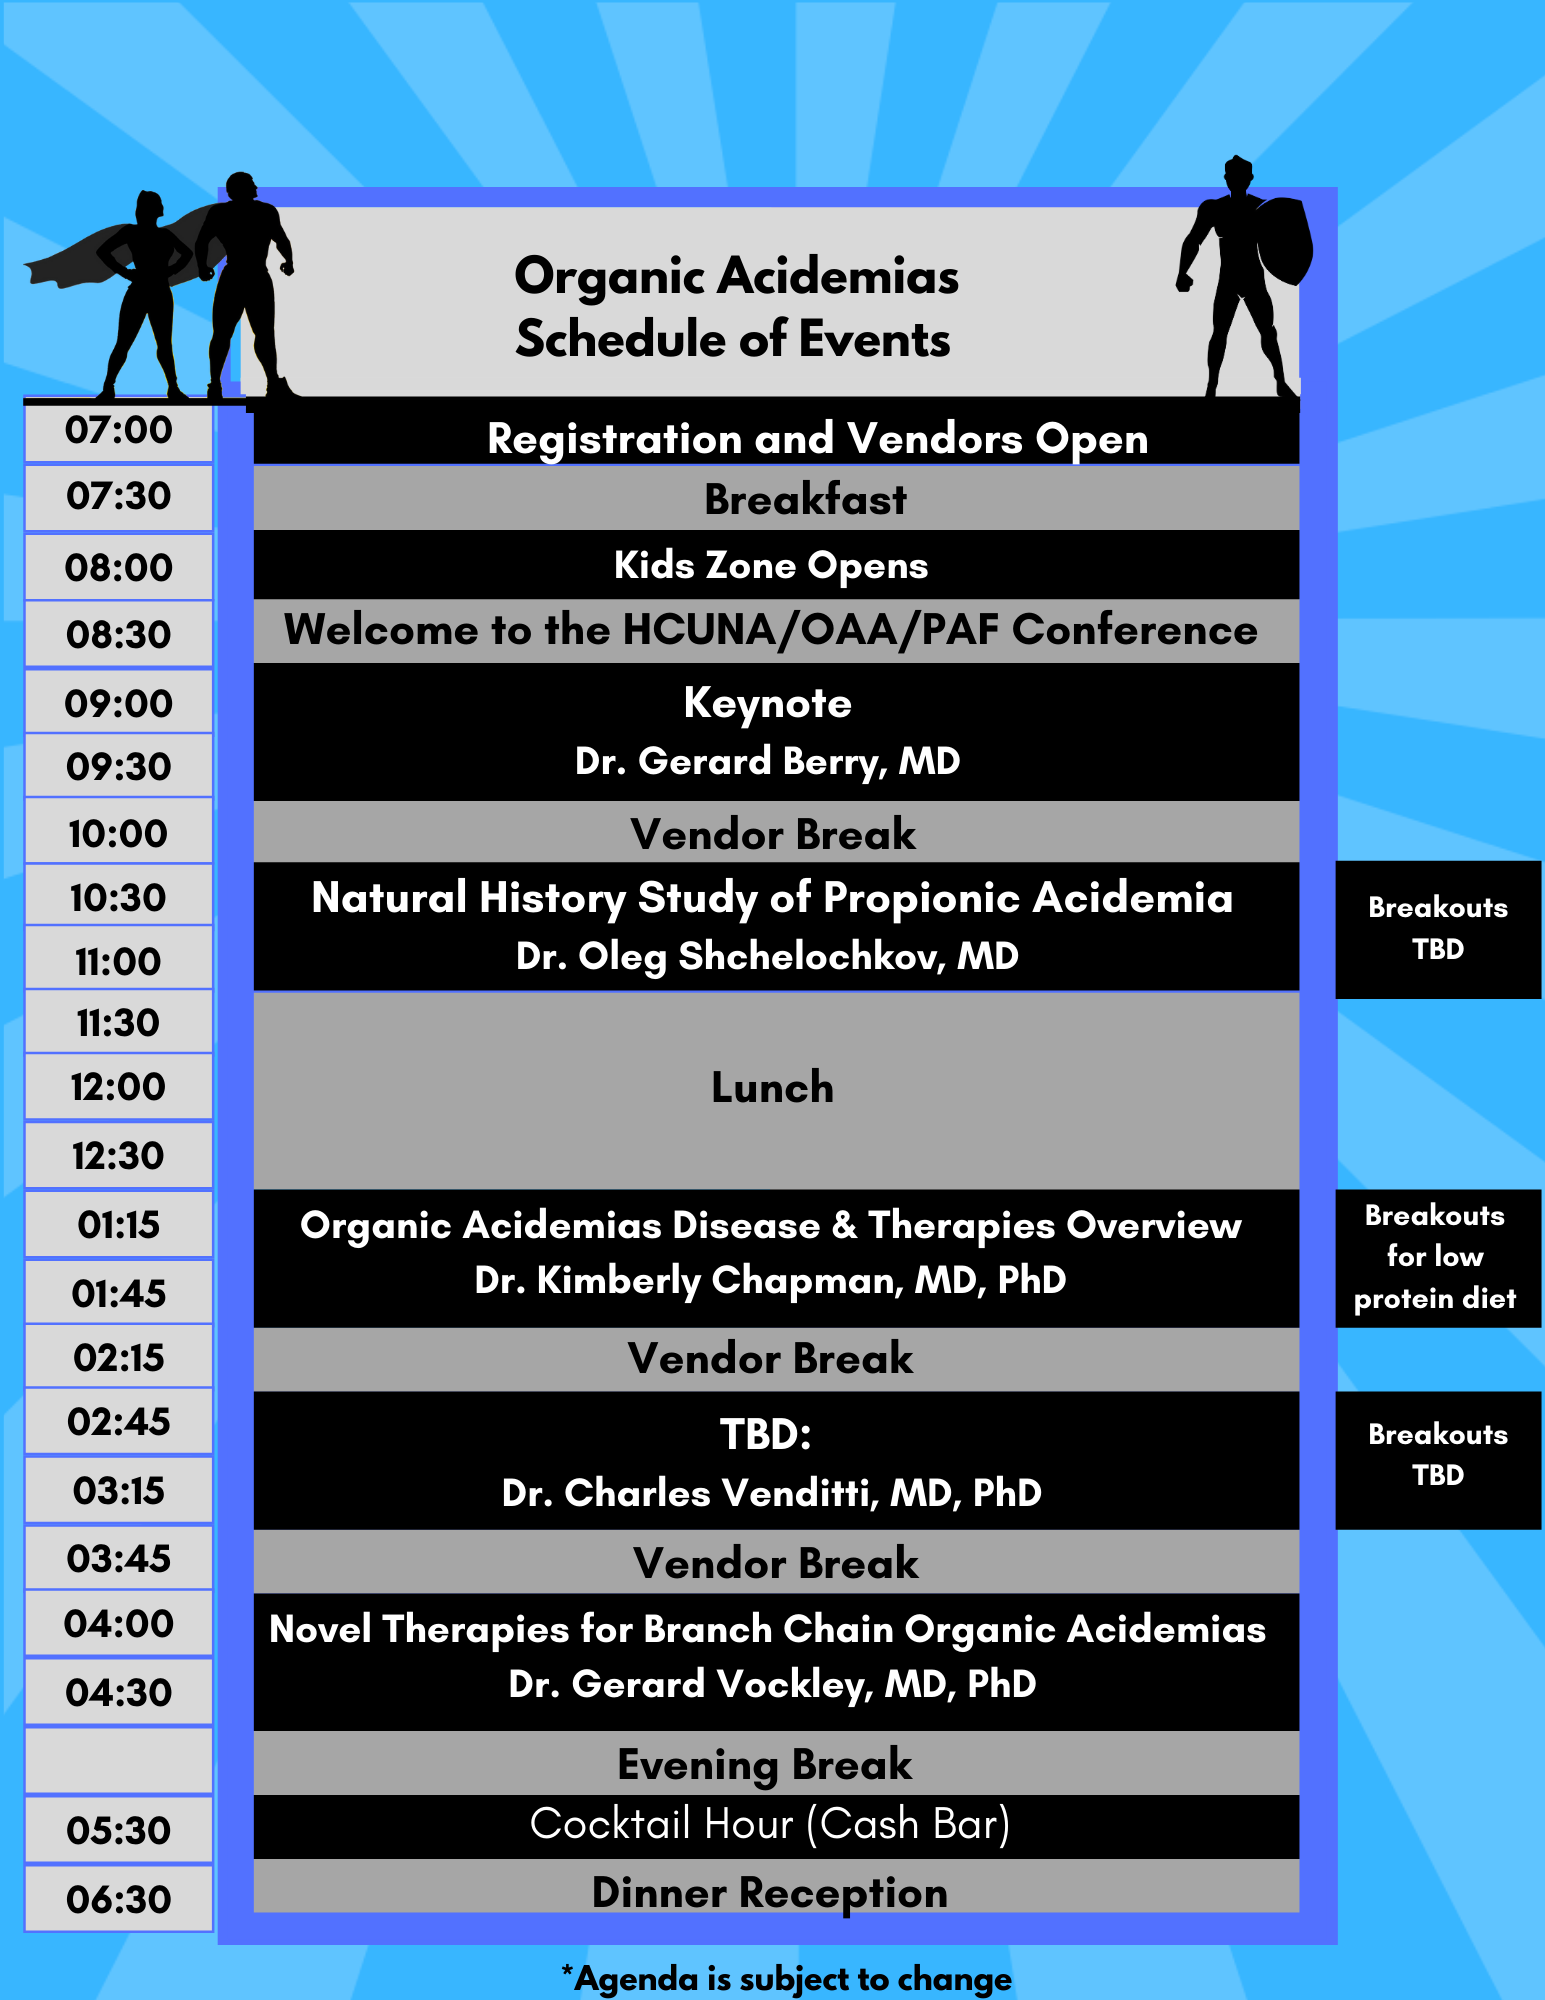 Organic Acidemias Schedule of Events 2021 Day 1